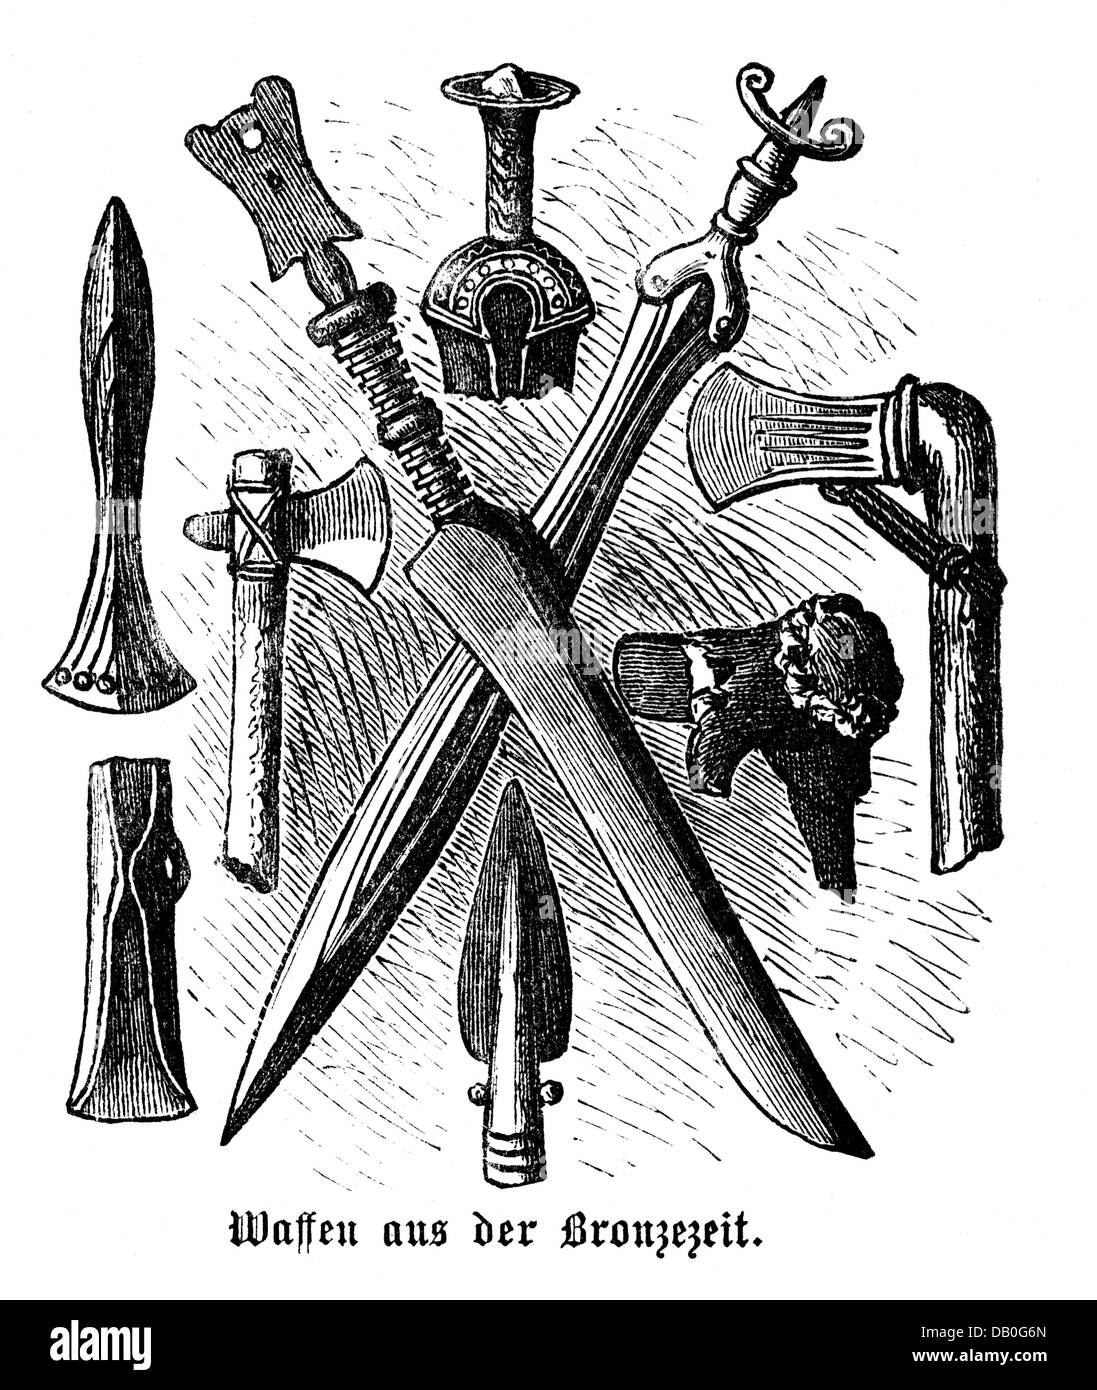 weapons, prehistory, weapons from the Bronze Age, wood engraving, 1872, sword, swords, axe, axes, dagger, daggers, - Stock Image